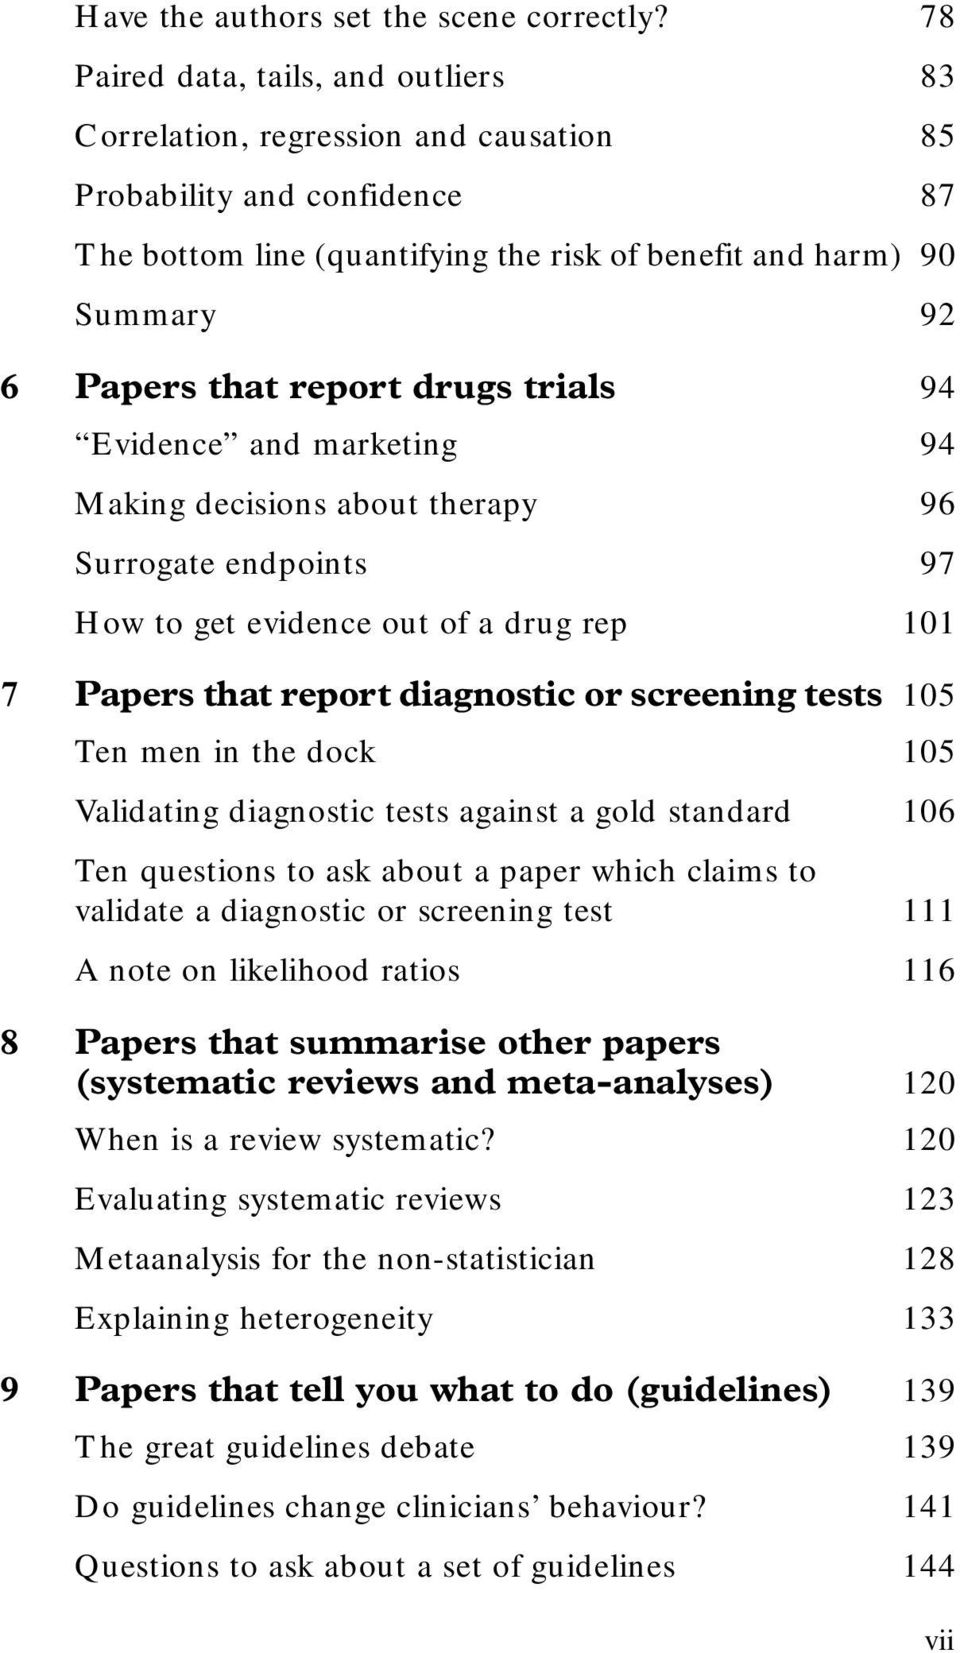 report drugs trials 94 Evidence and marketing 94 Making decisions about therapy 96 Surrogate endpoints 97 How to get evidence out of a drug rep 101 7 Papers that report diagnostic or screening tests